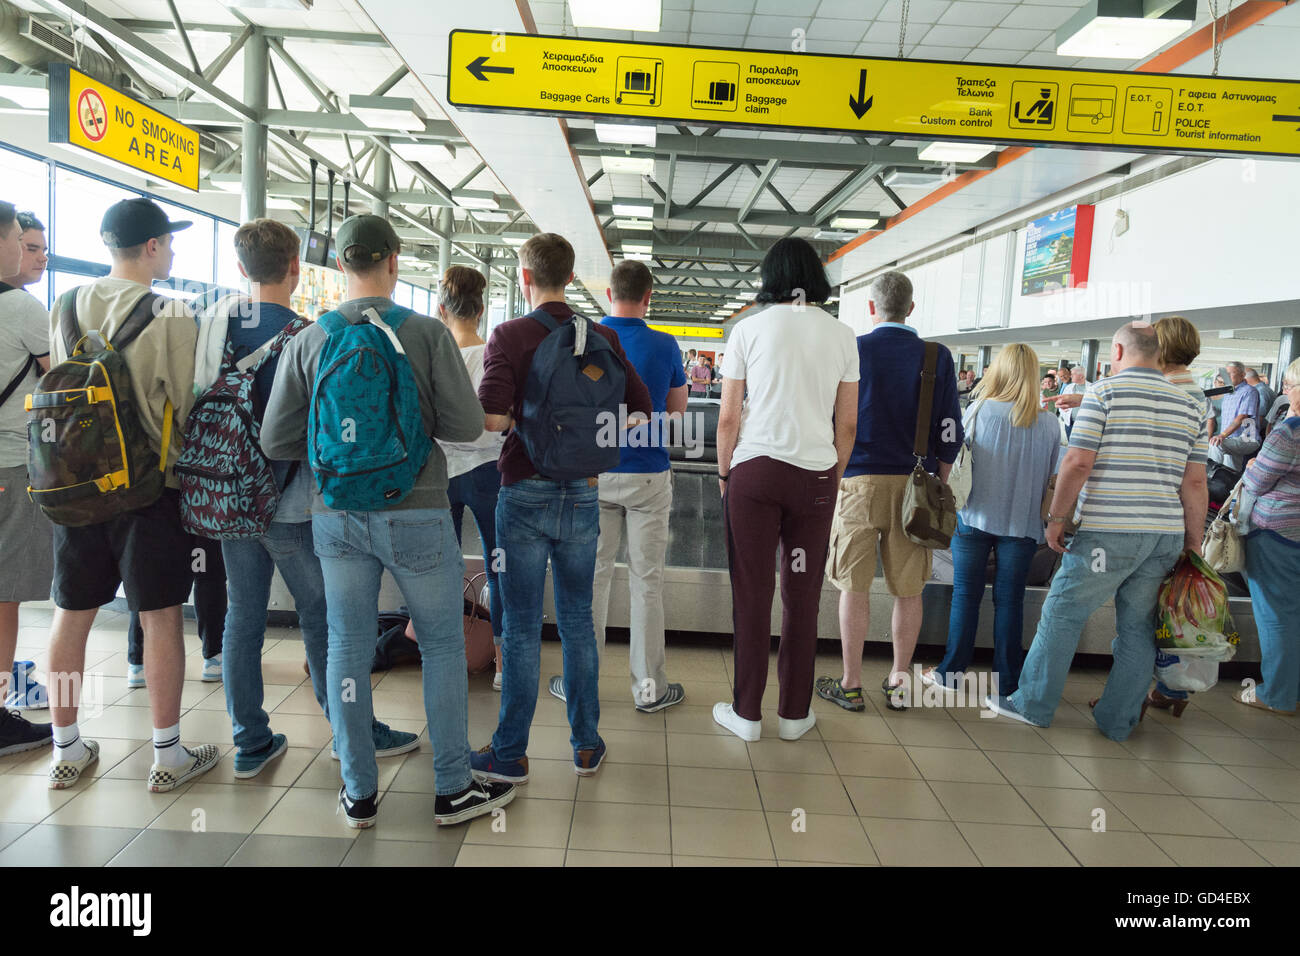 Baggage reclaim - people waiting at Corfu airport to claim baggage from the carousel - Stock Image